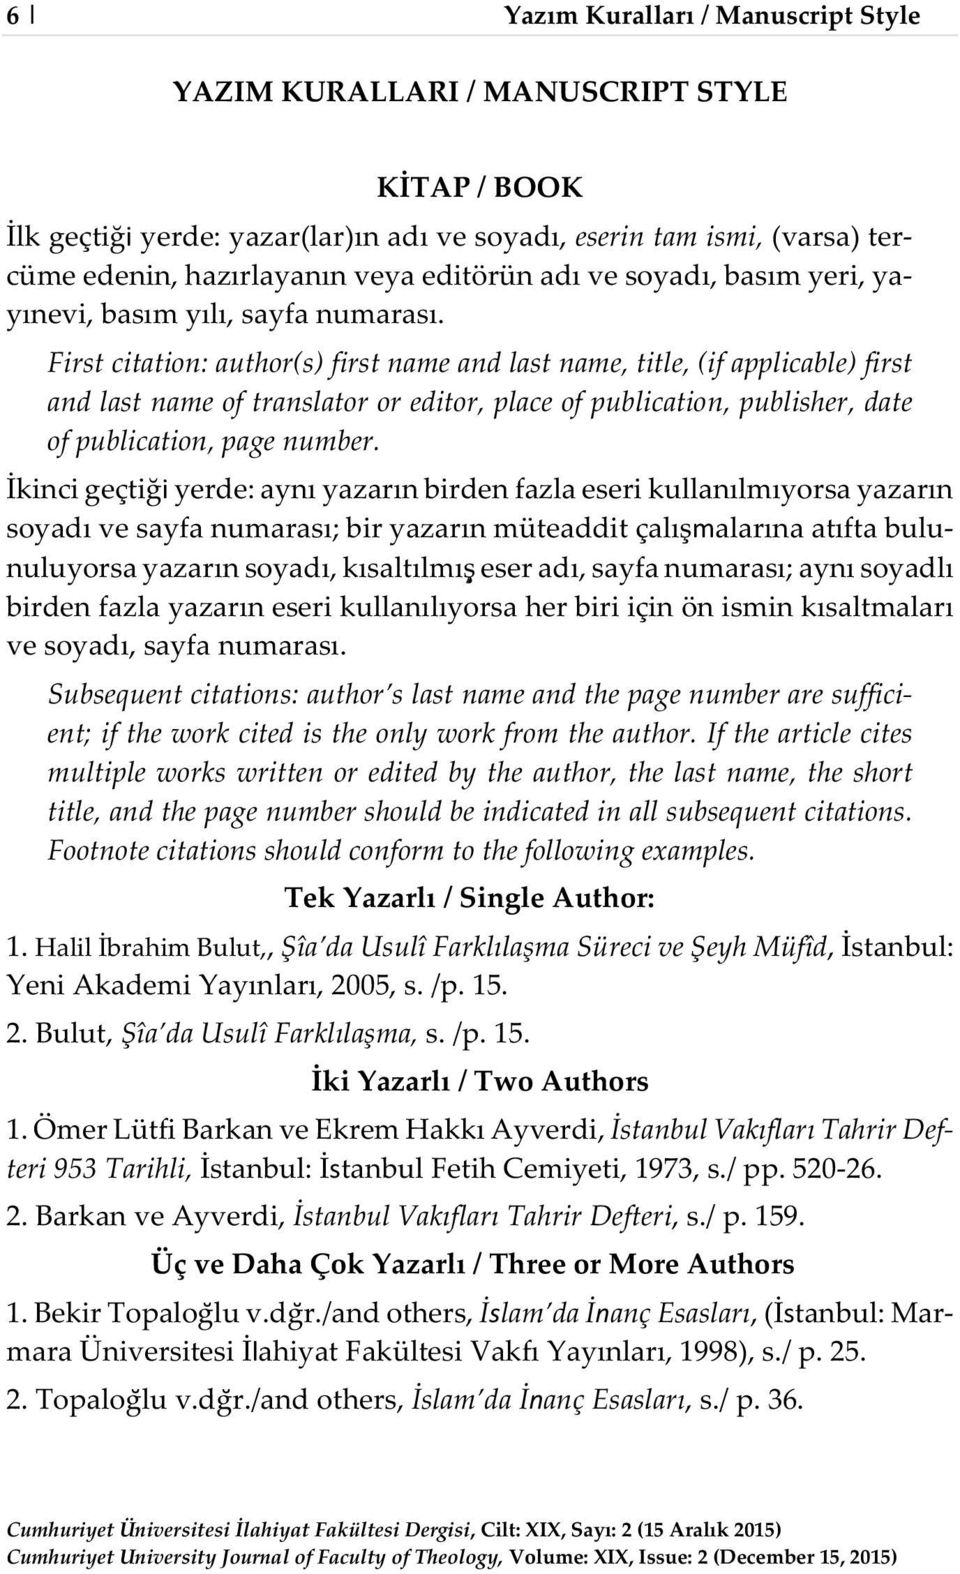 First citation: author(s) first name and last name, title, (if applicable) first and last name of translator or editor, place of publication, publisher, date of publication, page number.